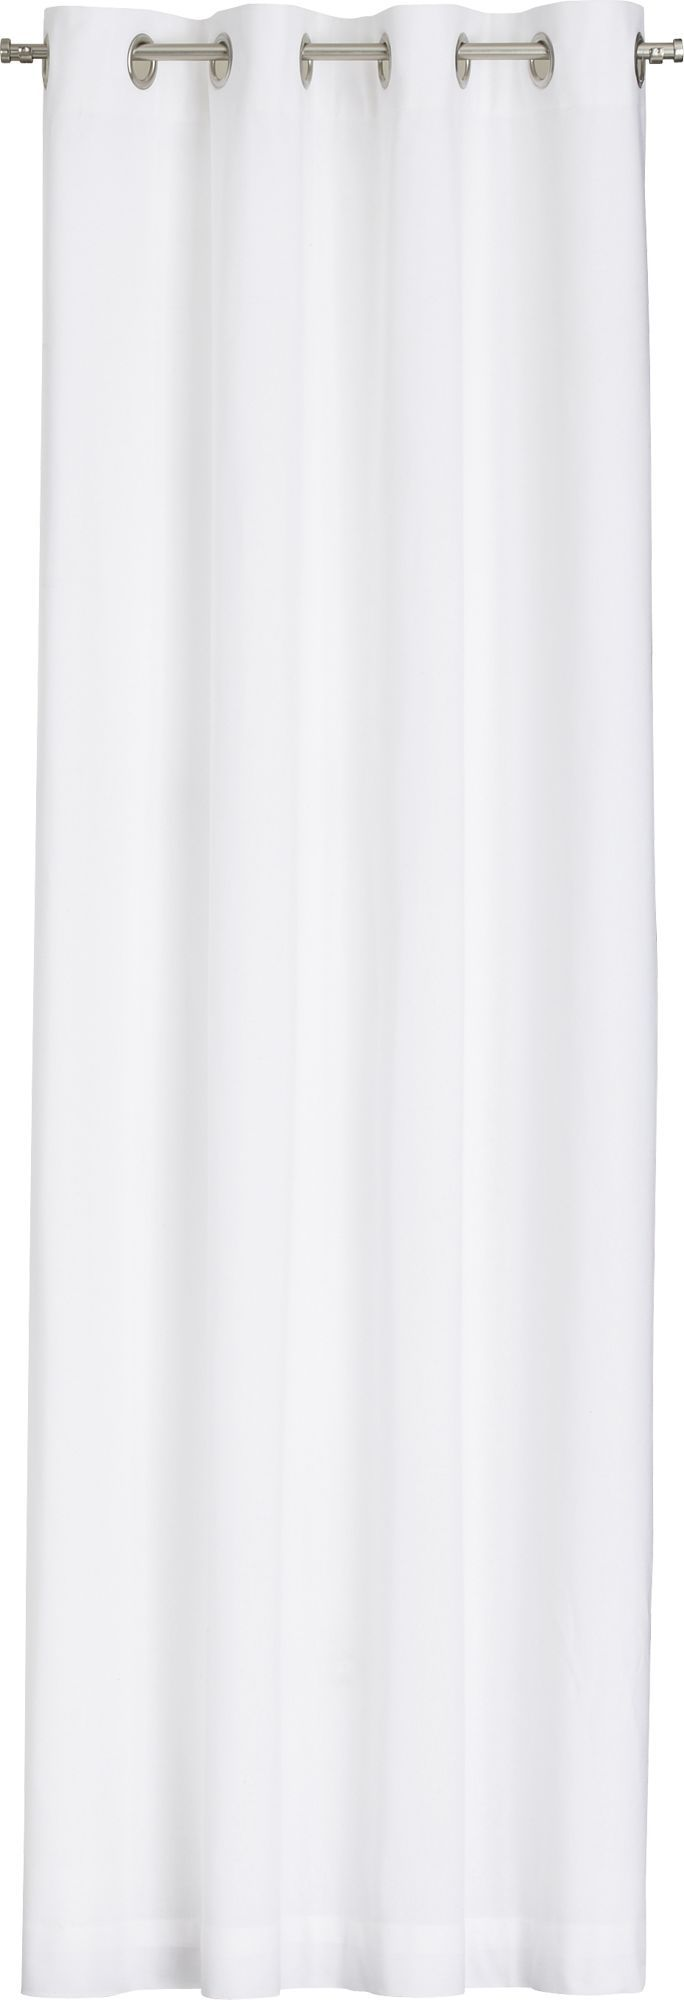 White curtain panels - Wallace White Grommet Curtain Panel In Curtains Crate And Barrel 52x84 80